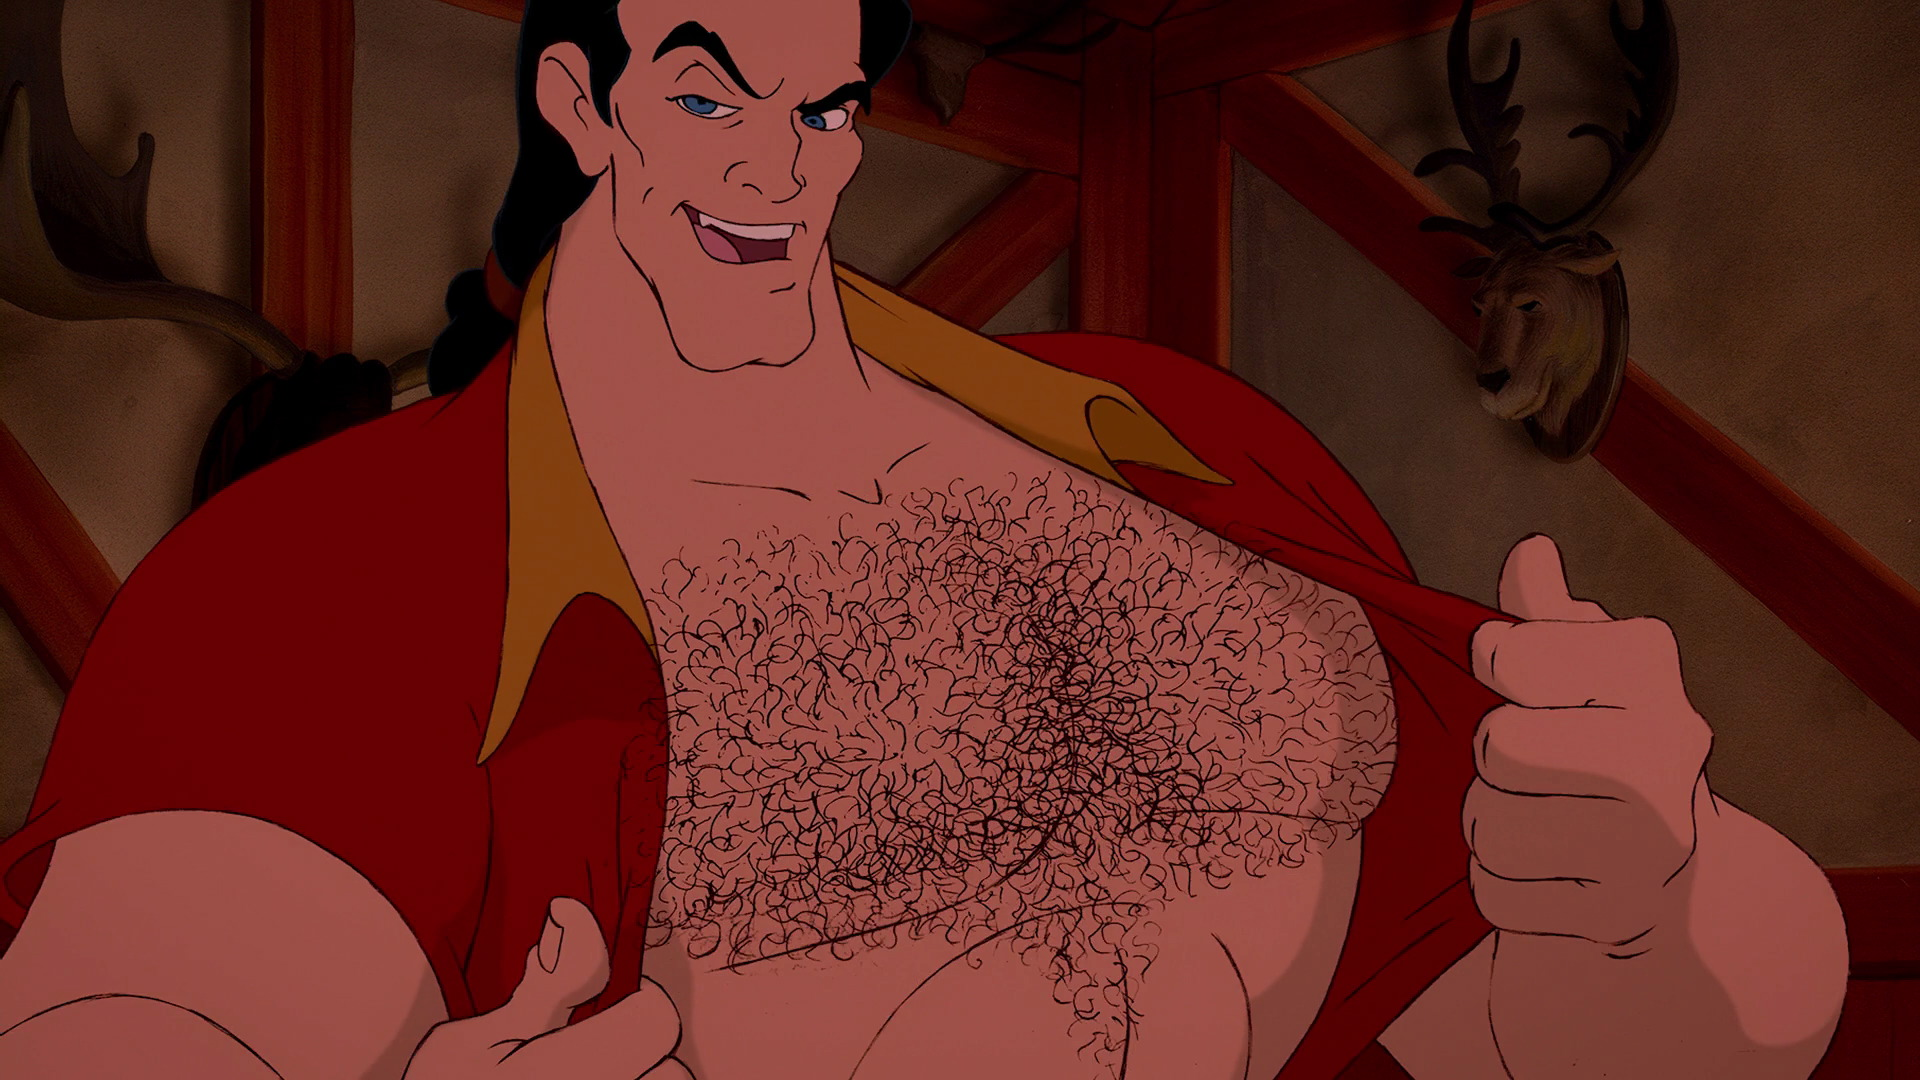 """And every last inch of me is covered in hair!"" - Gaston"